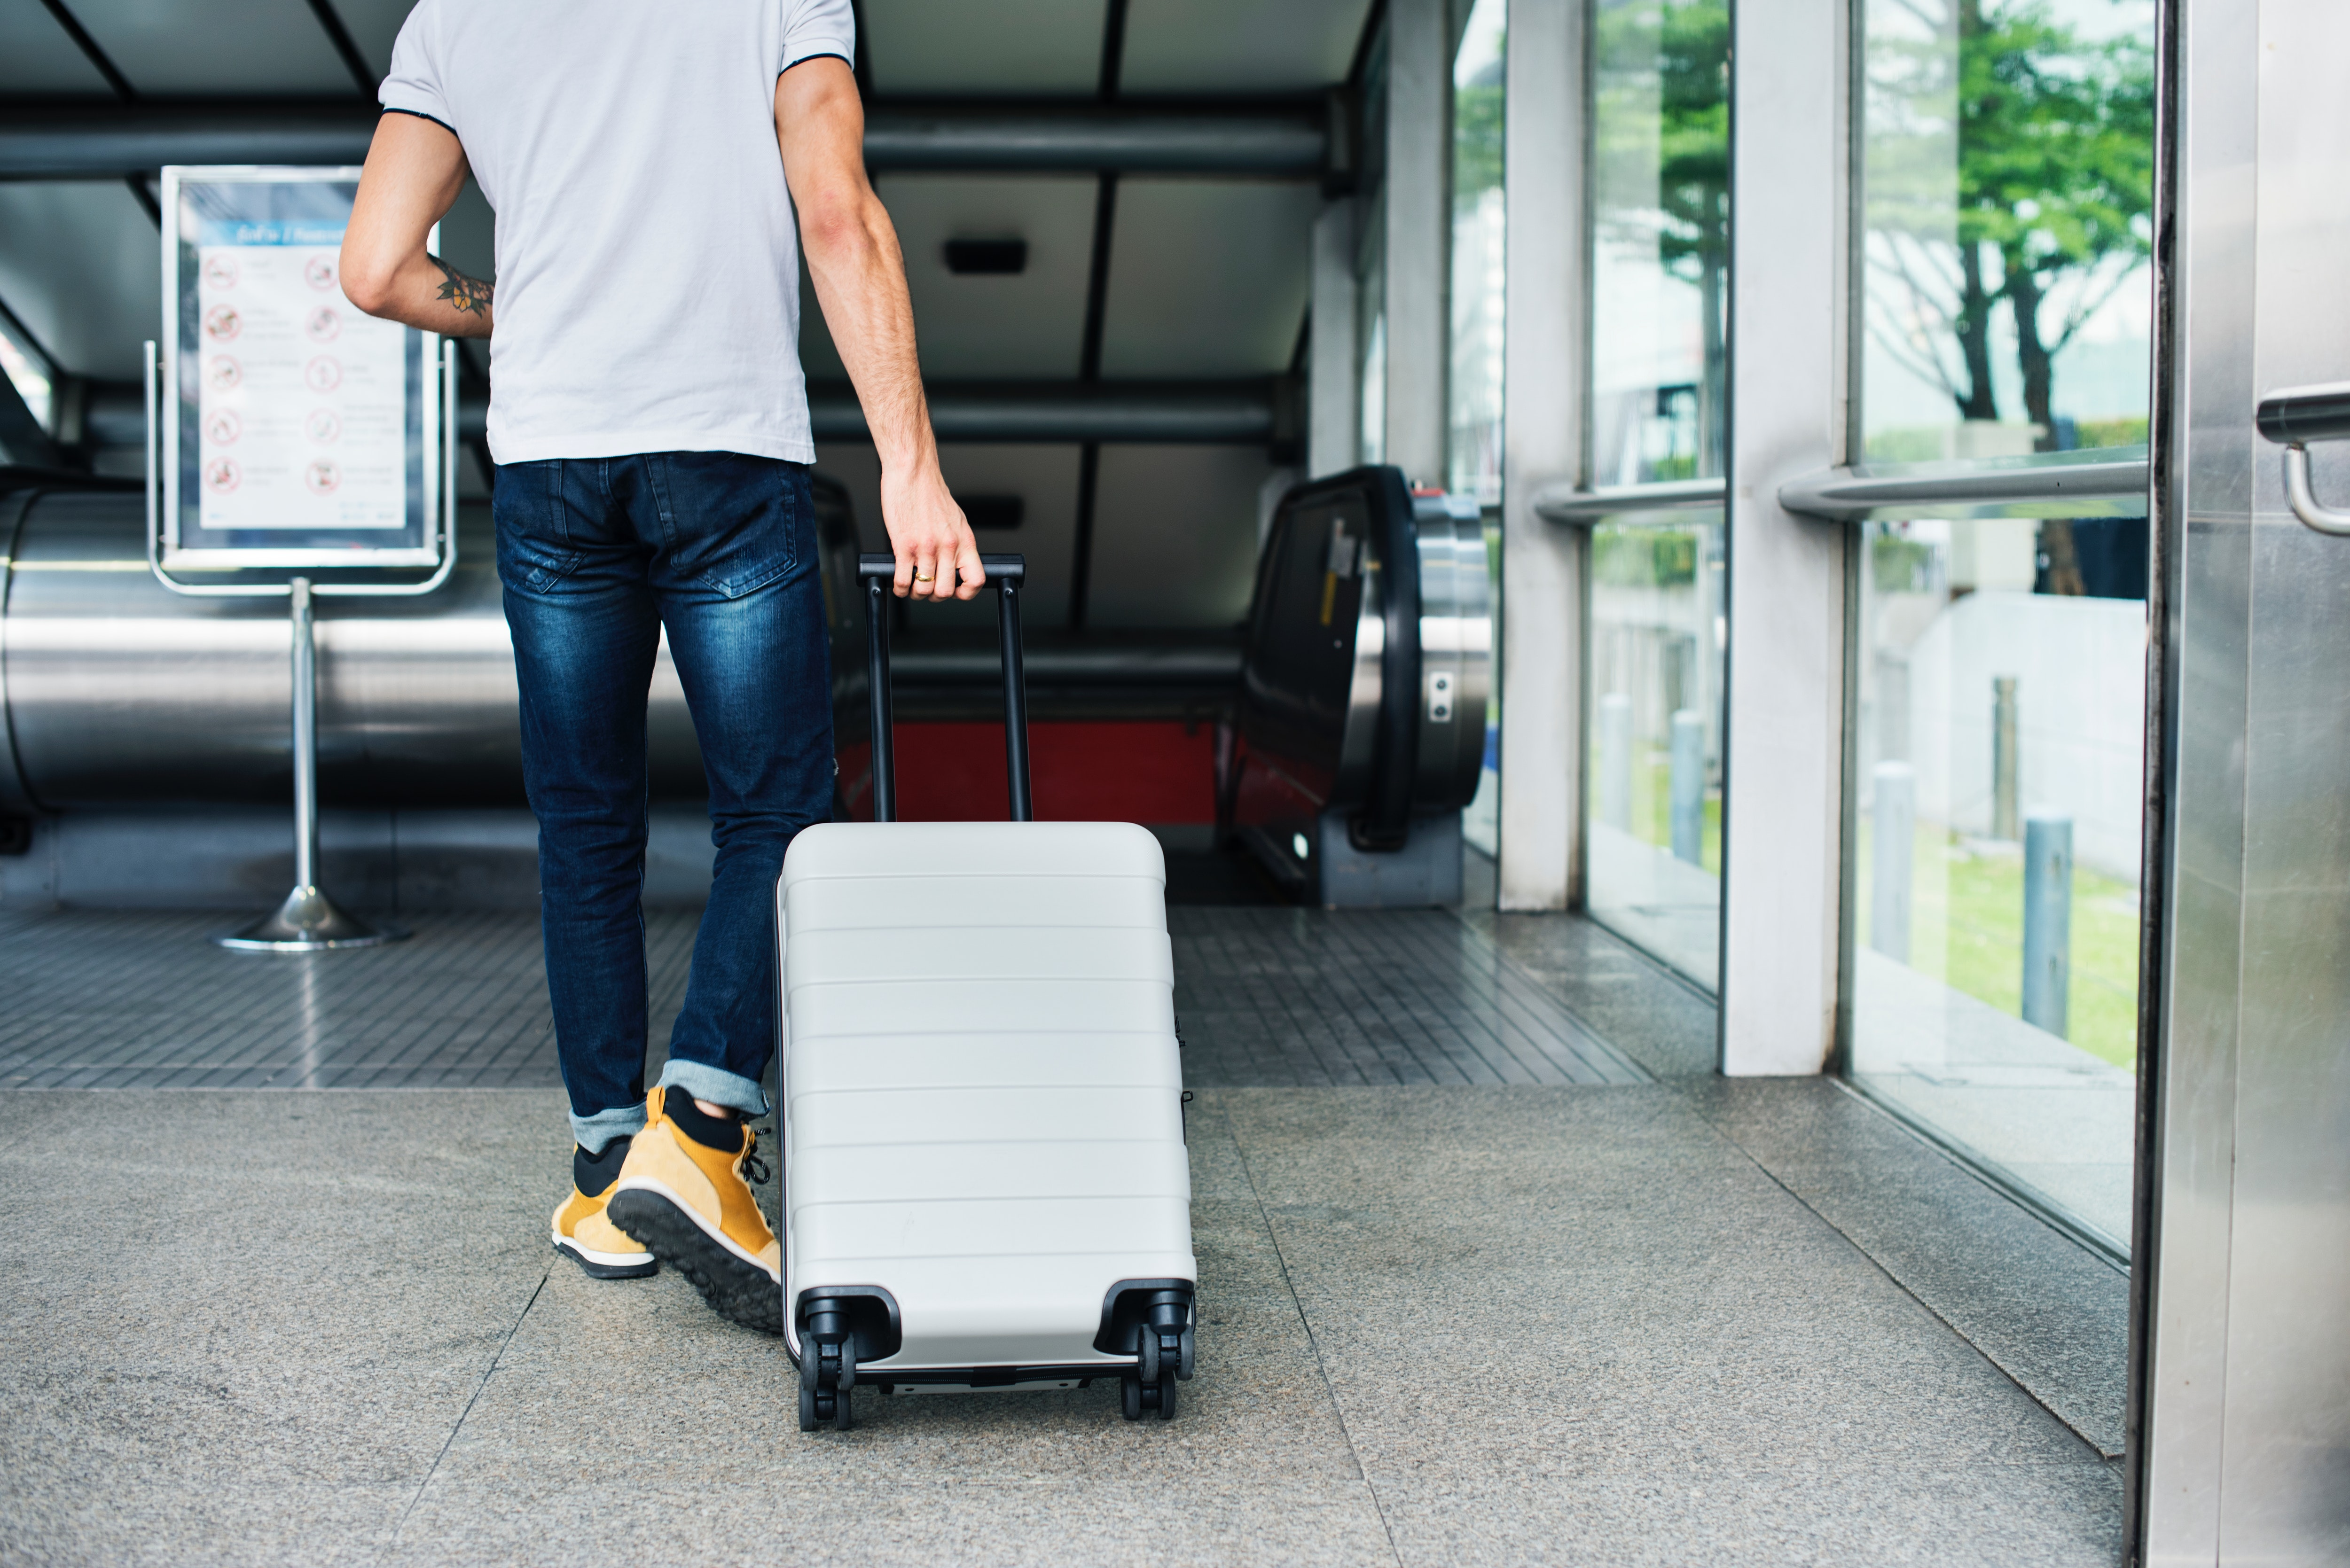 Will I Lose My Travel Visa Over a DUI?